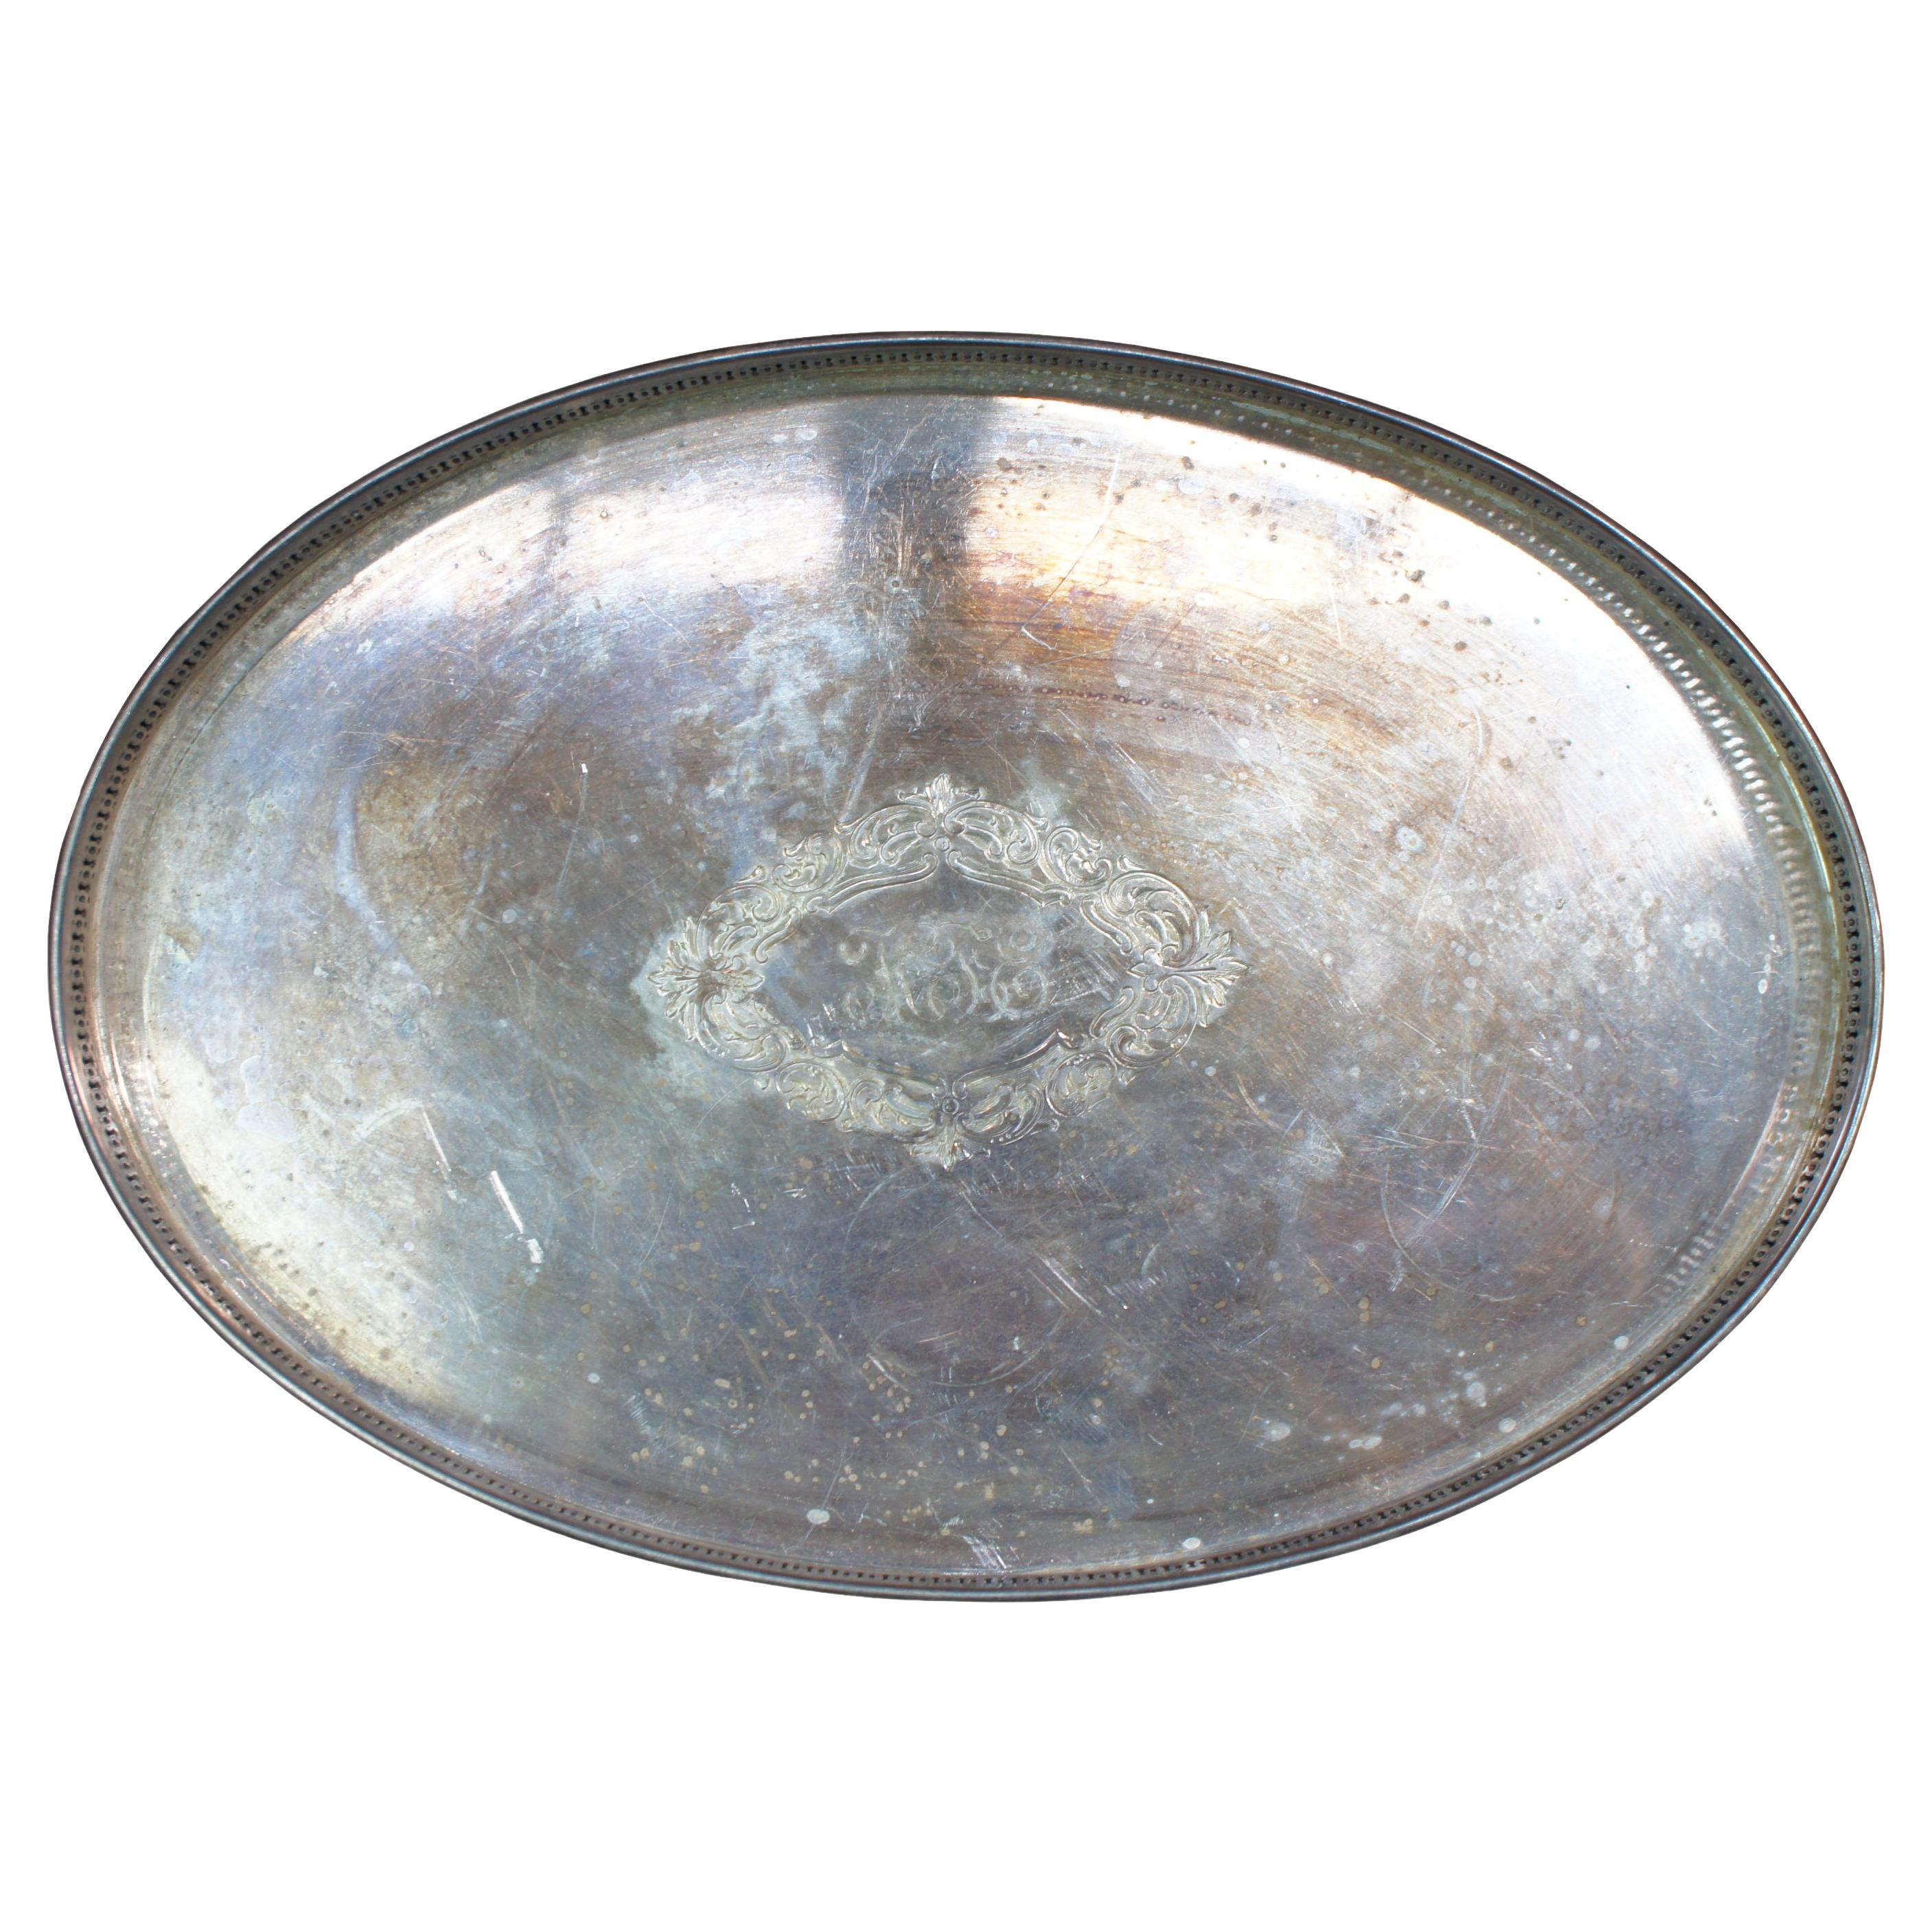 Gorham Manufacturing Company Platters and Serveware